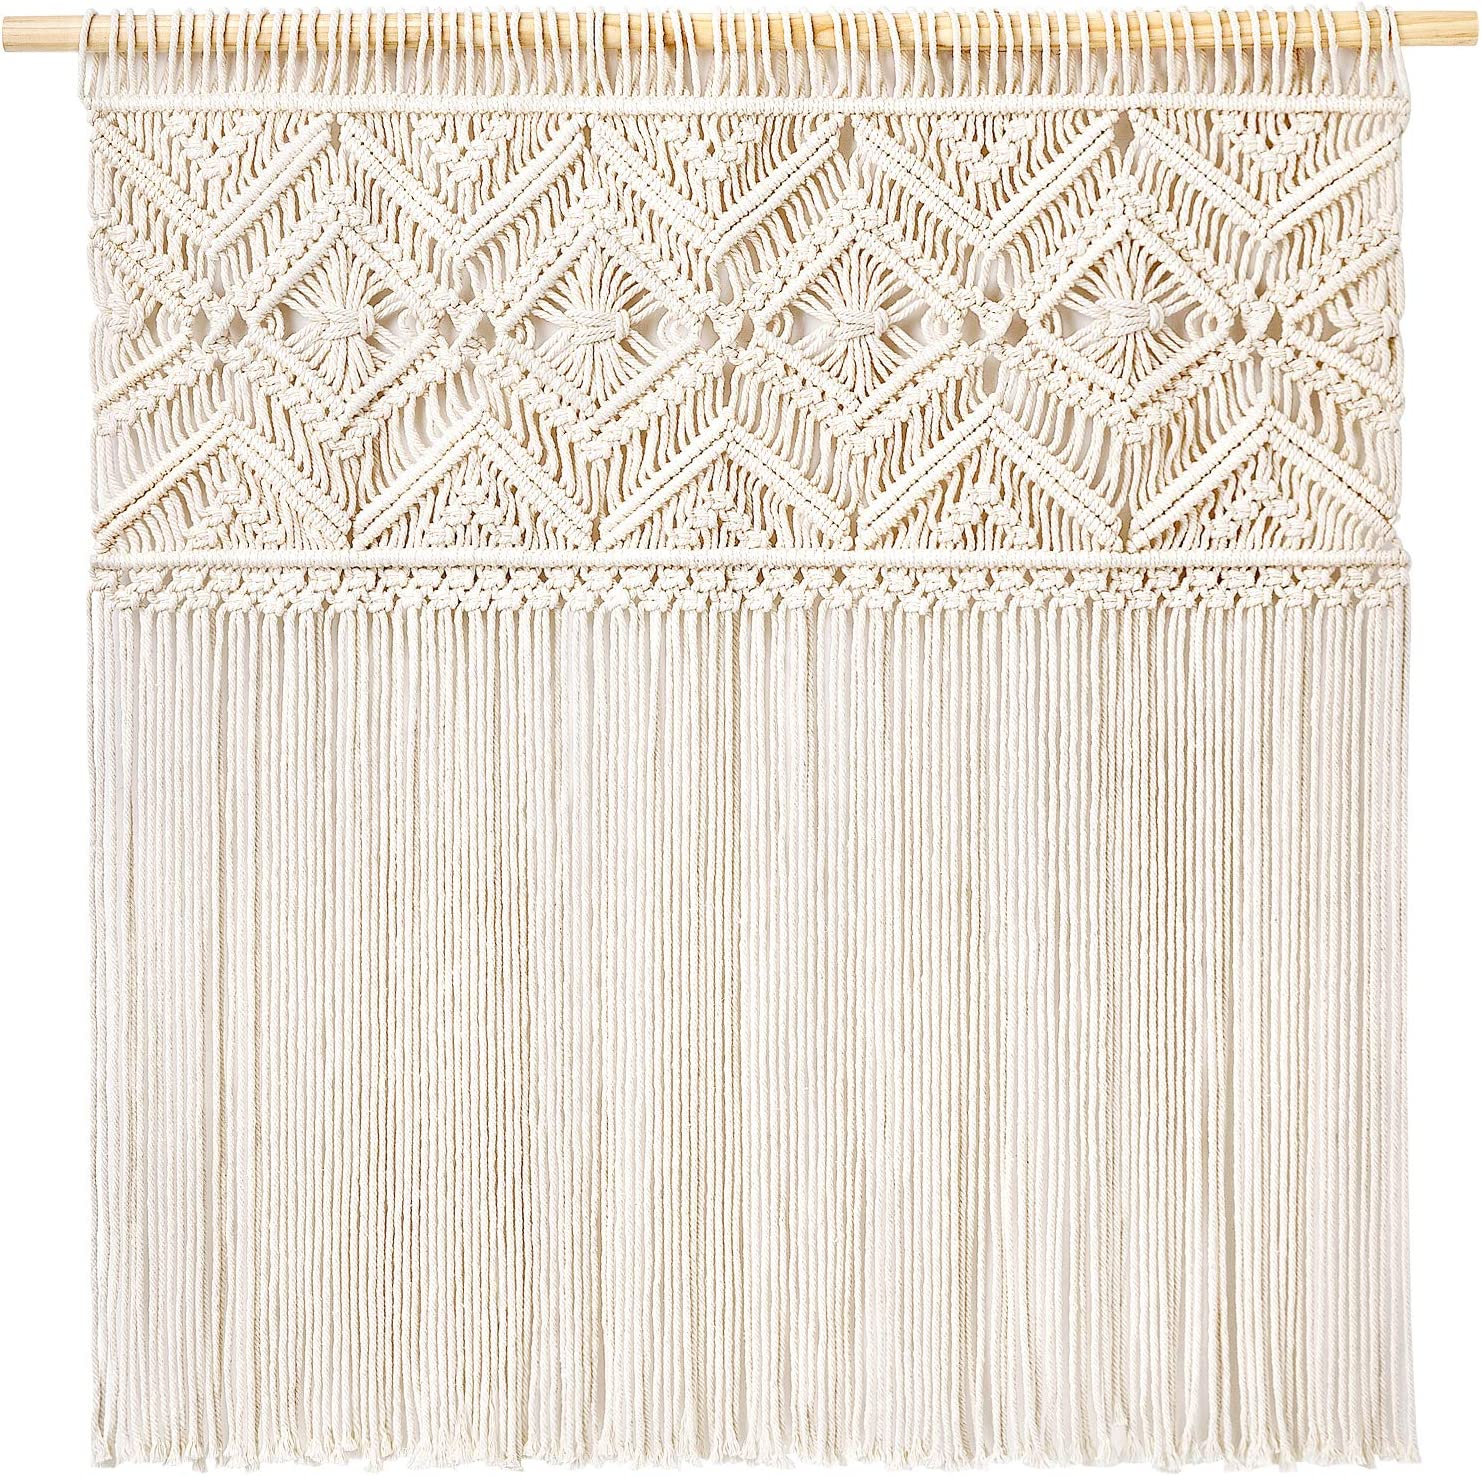 """Mkono Large Macrame Wall Hanging Boho Tapestry Fringe Wall Decor Woven Home Decoration for Apartment Living Room Bedroom Gallery Background,36""""x33"""""""